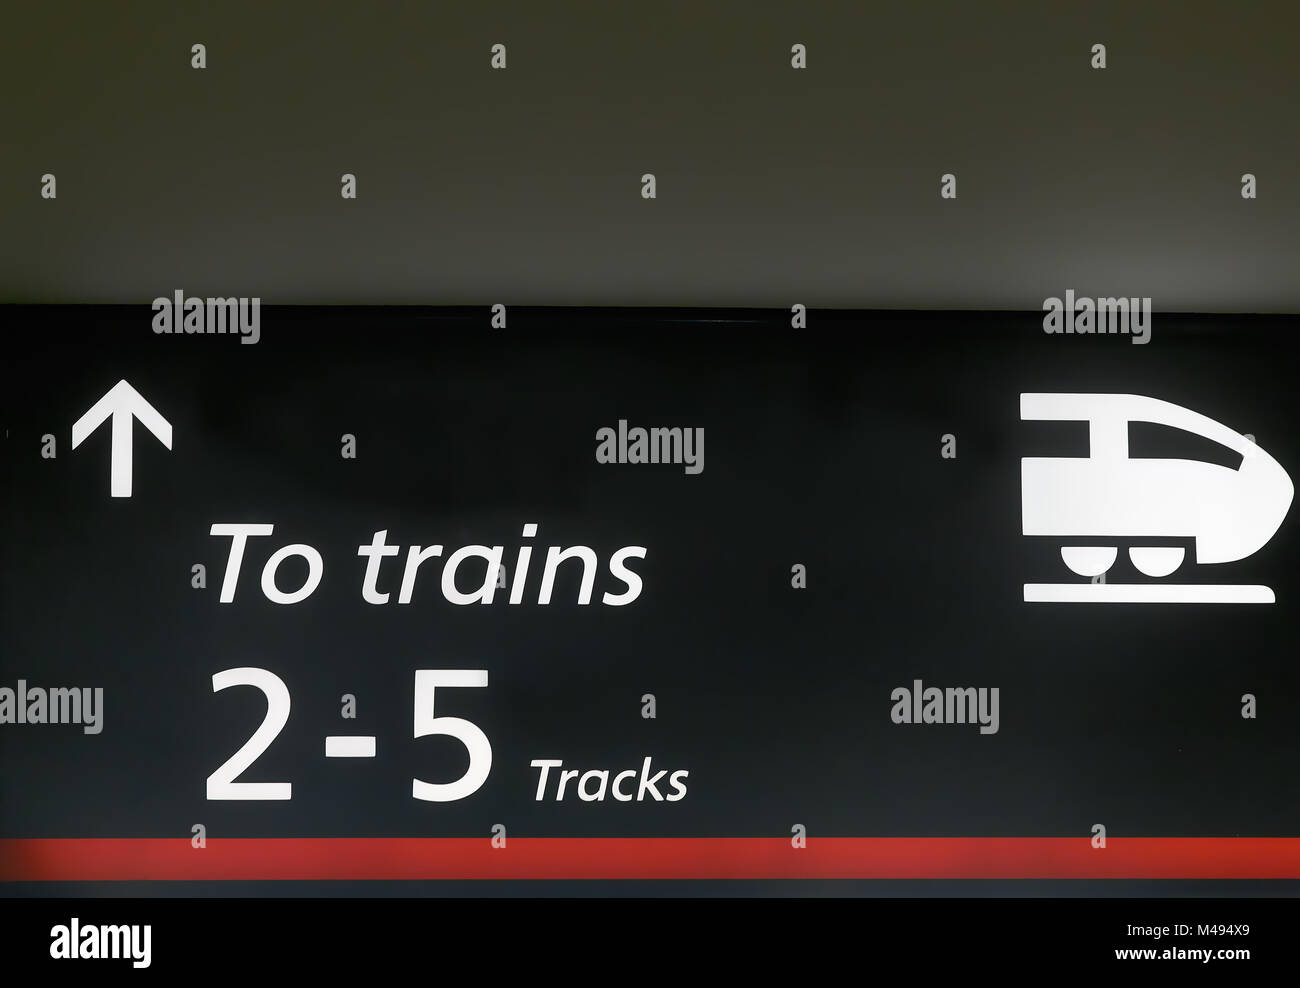 The signal output to the trains at the station. - Stock Image